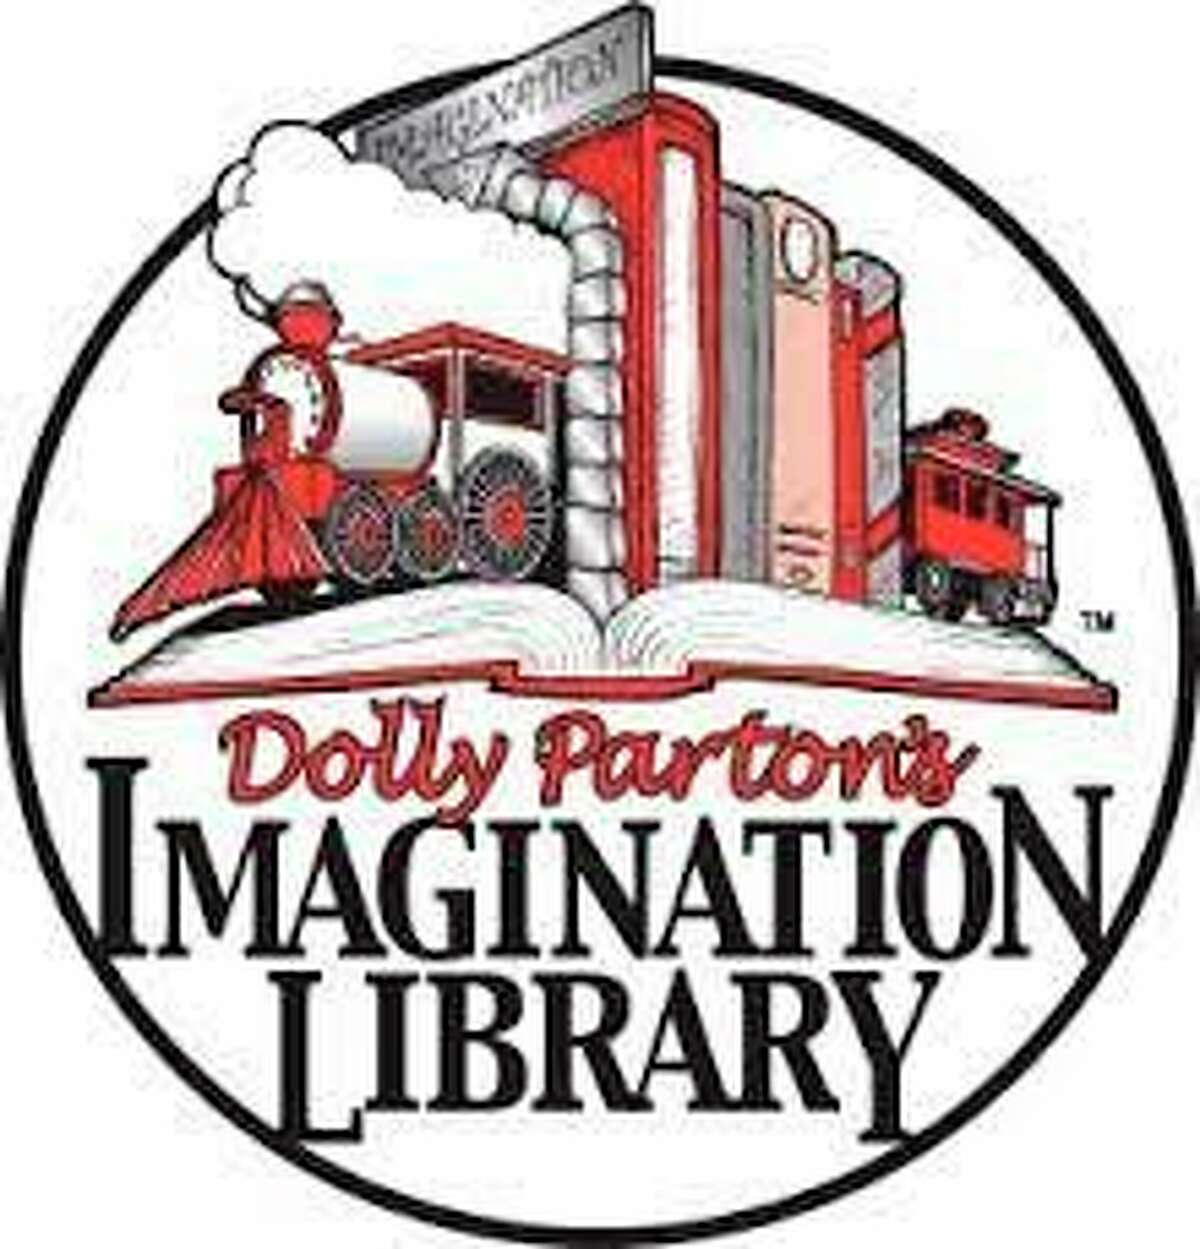 Proceeds from the annual FiveCAP golf fundraiser on Aug. 6 will go toward enrolling children in the Dolly Parton's Imagination Library, through which the children will receive free books up to age 5. (Submitted photo)